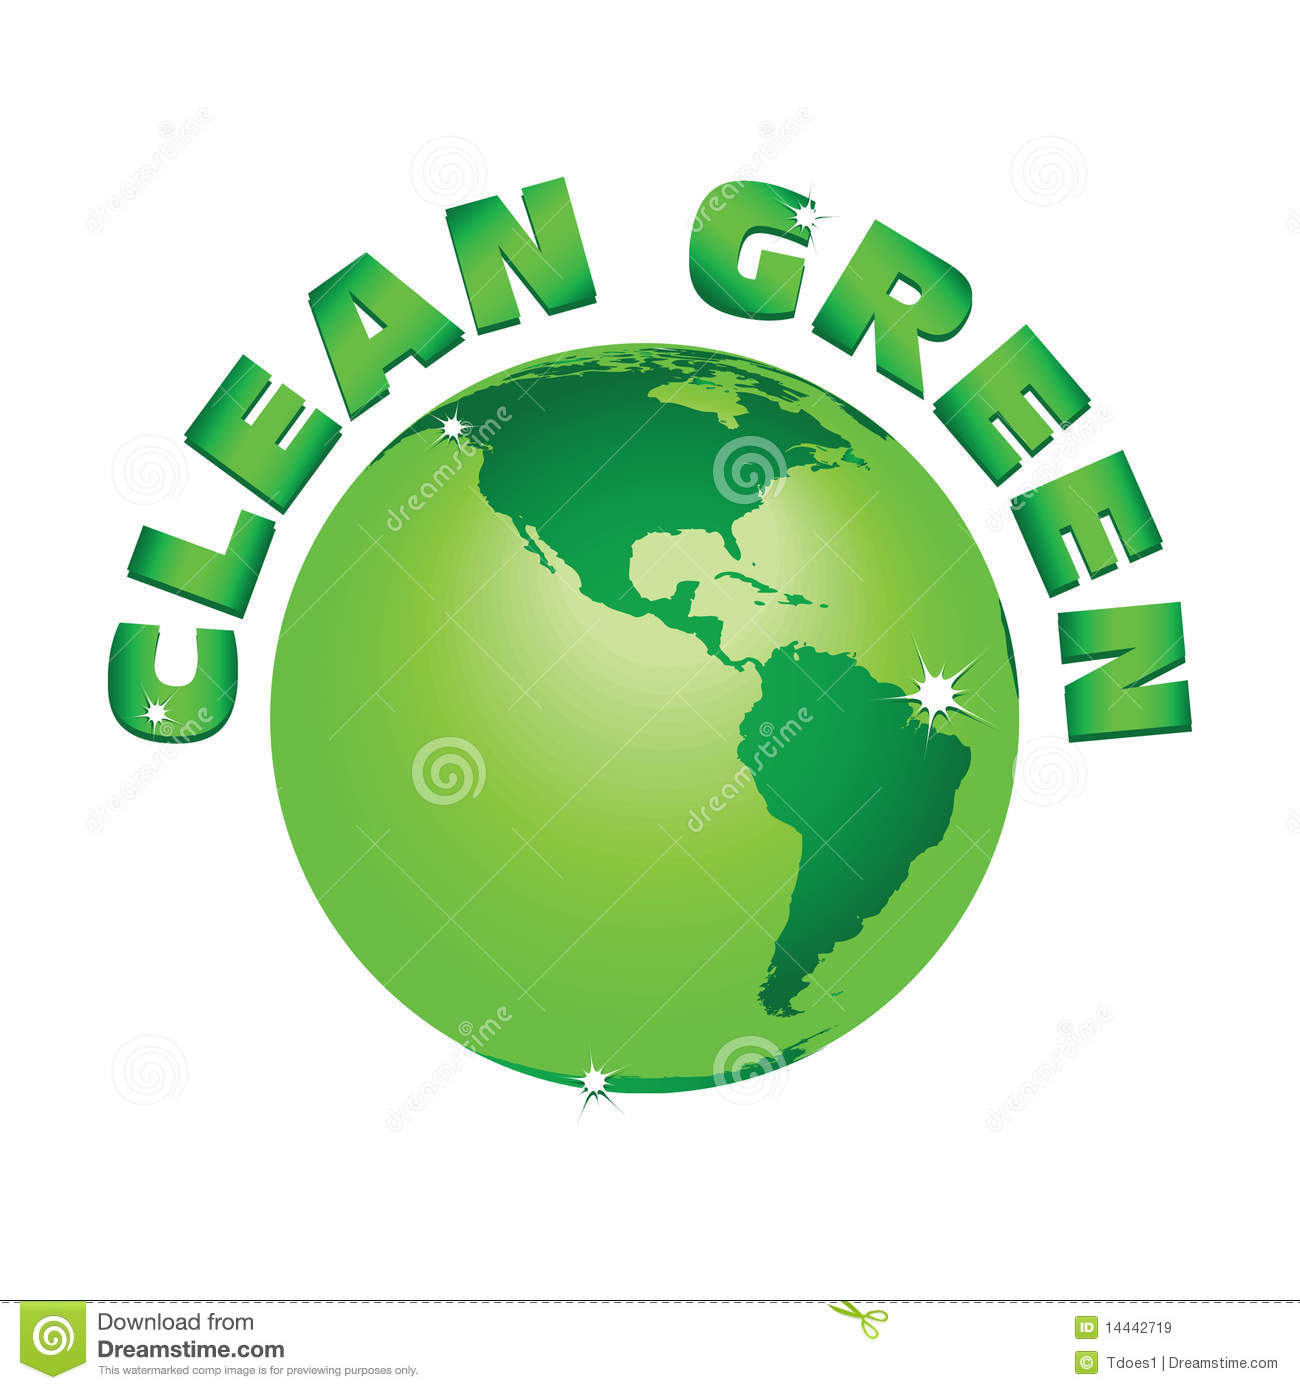 how to make earth green and clean